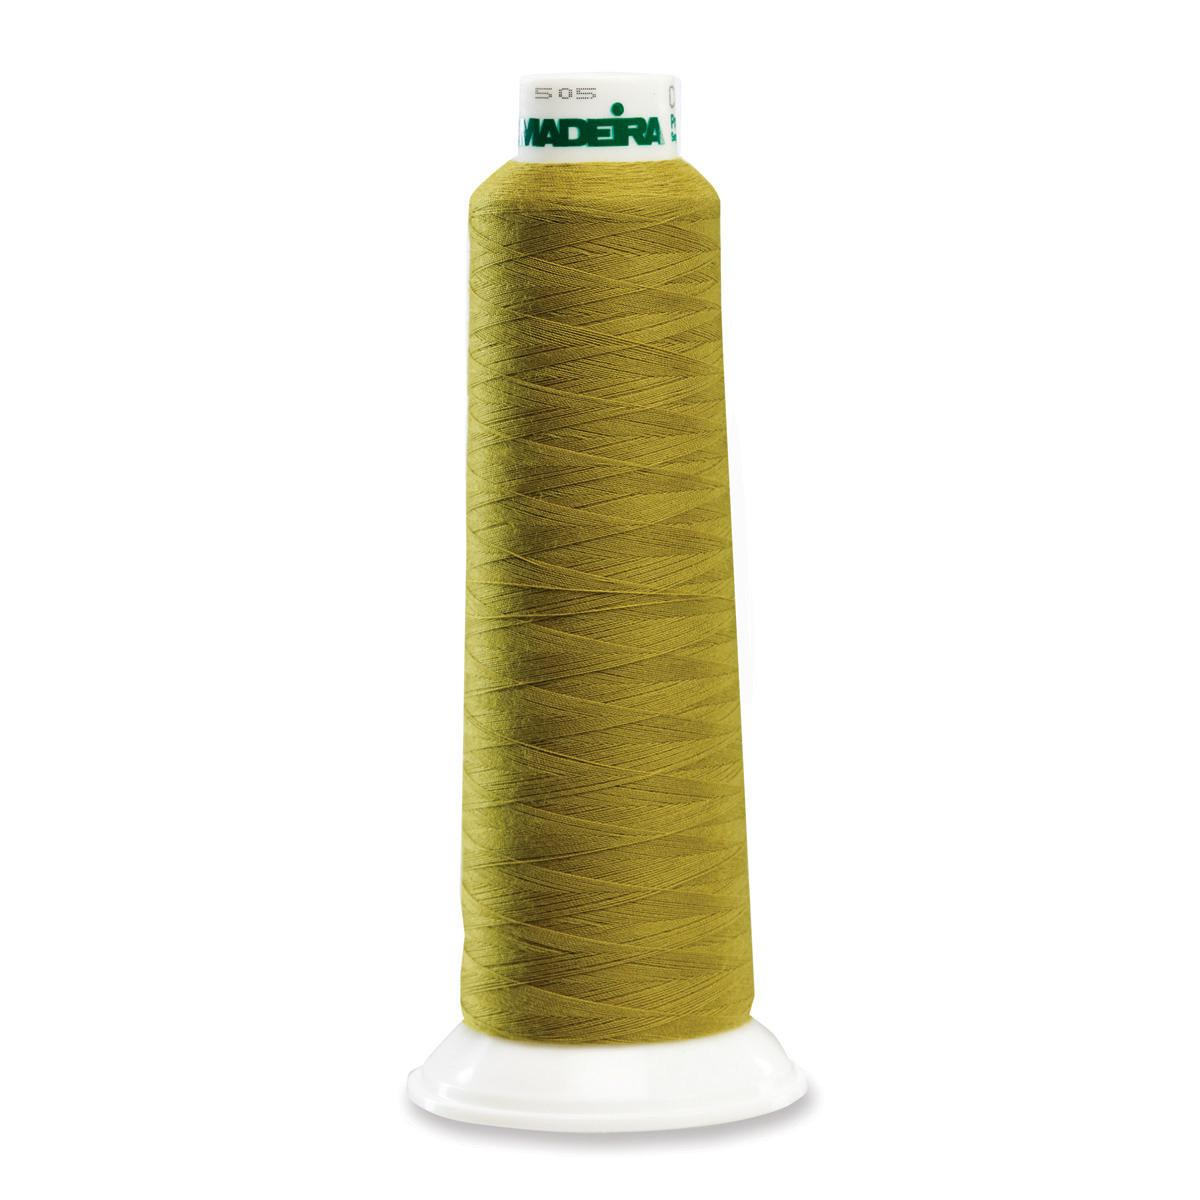 Madeira Serger Thread - Olive Drab